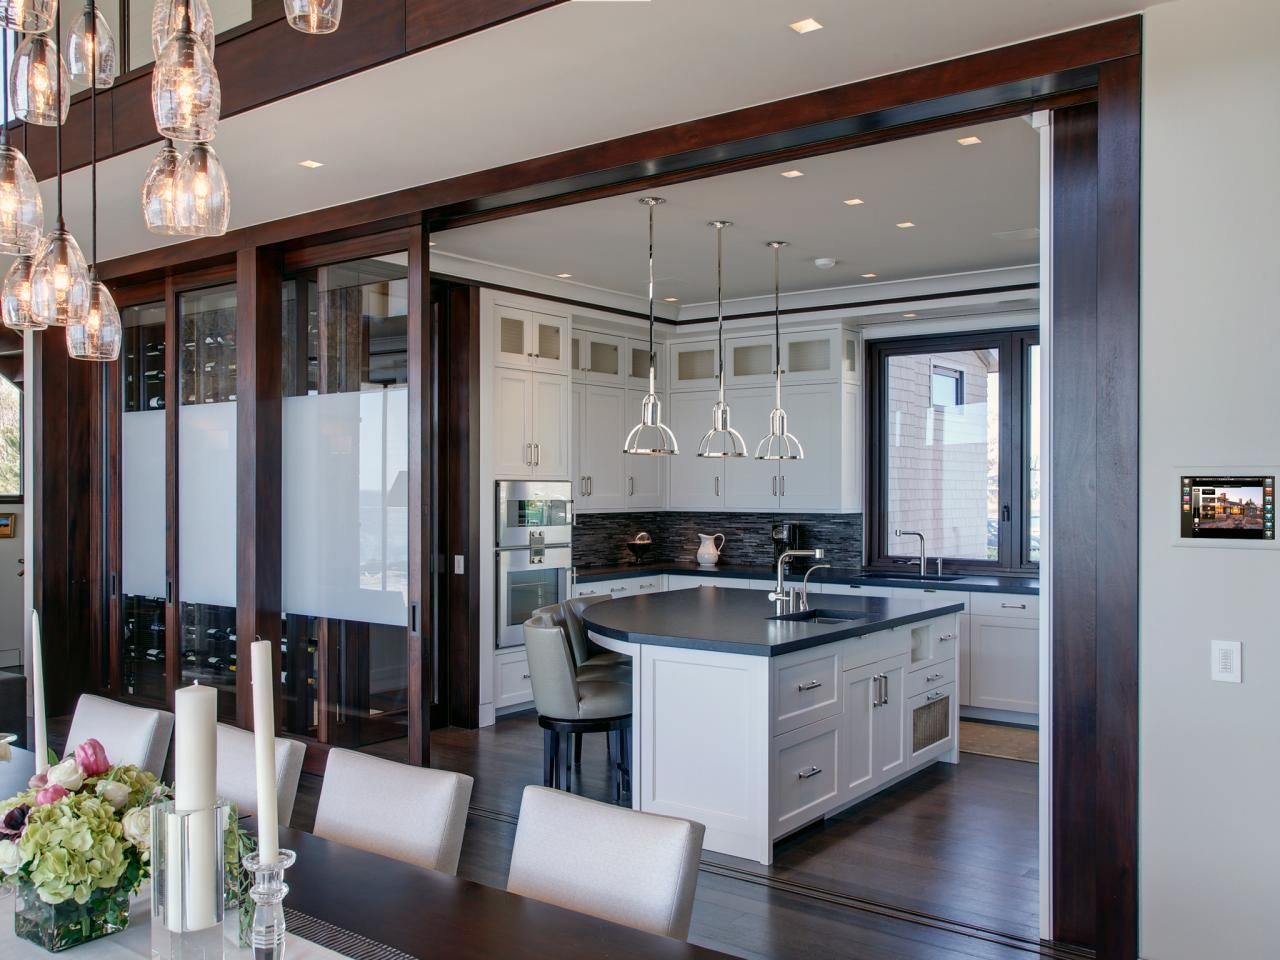 A sleek open kitchen is connected to the dining room via for Sliding door for kitchen entrance